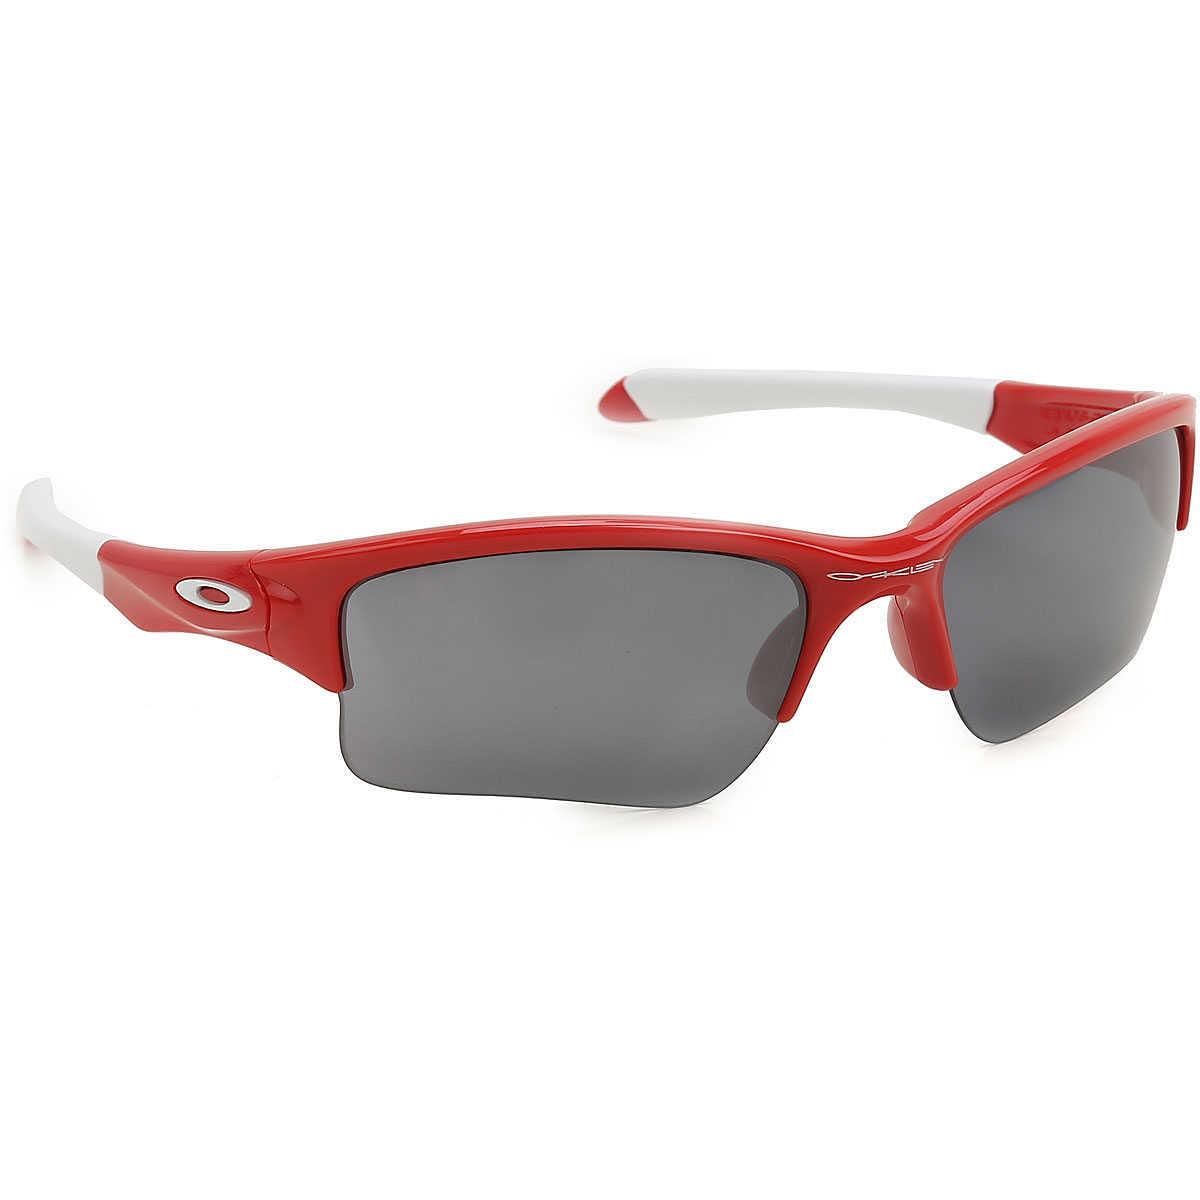 Oakley Kids Sunglasses for Boys On Sale in Outlet Red DK - GOOFASH - Mens SUNGLASSES